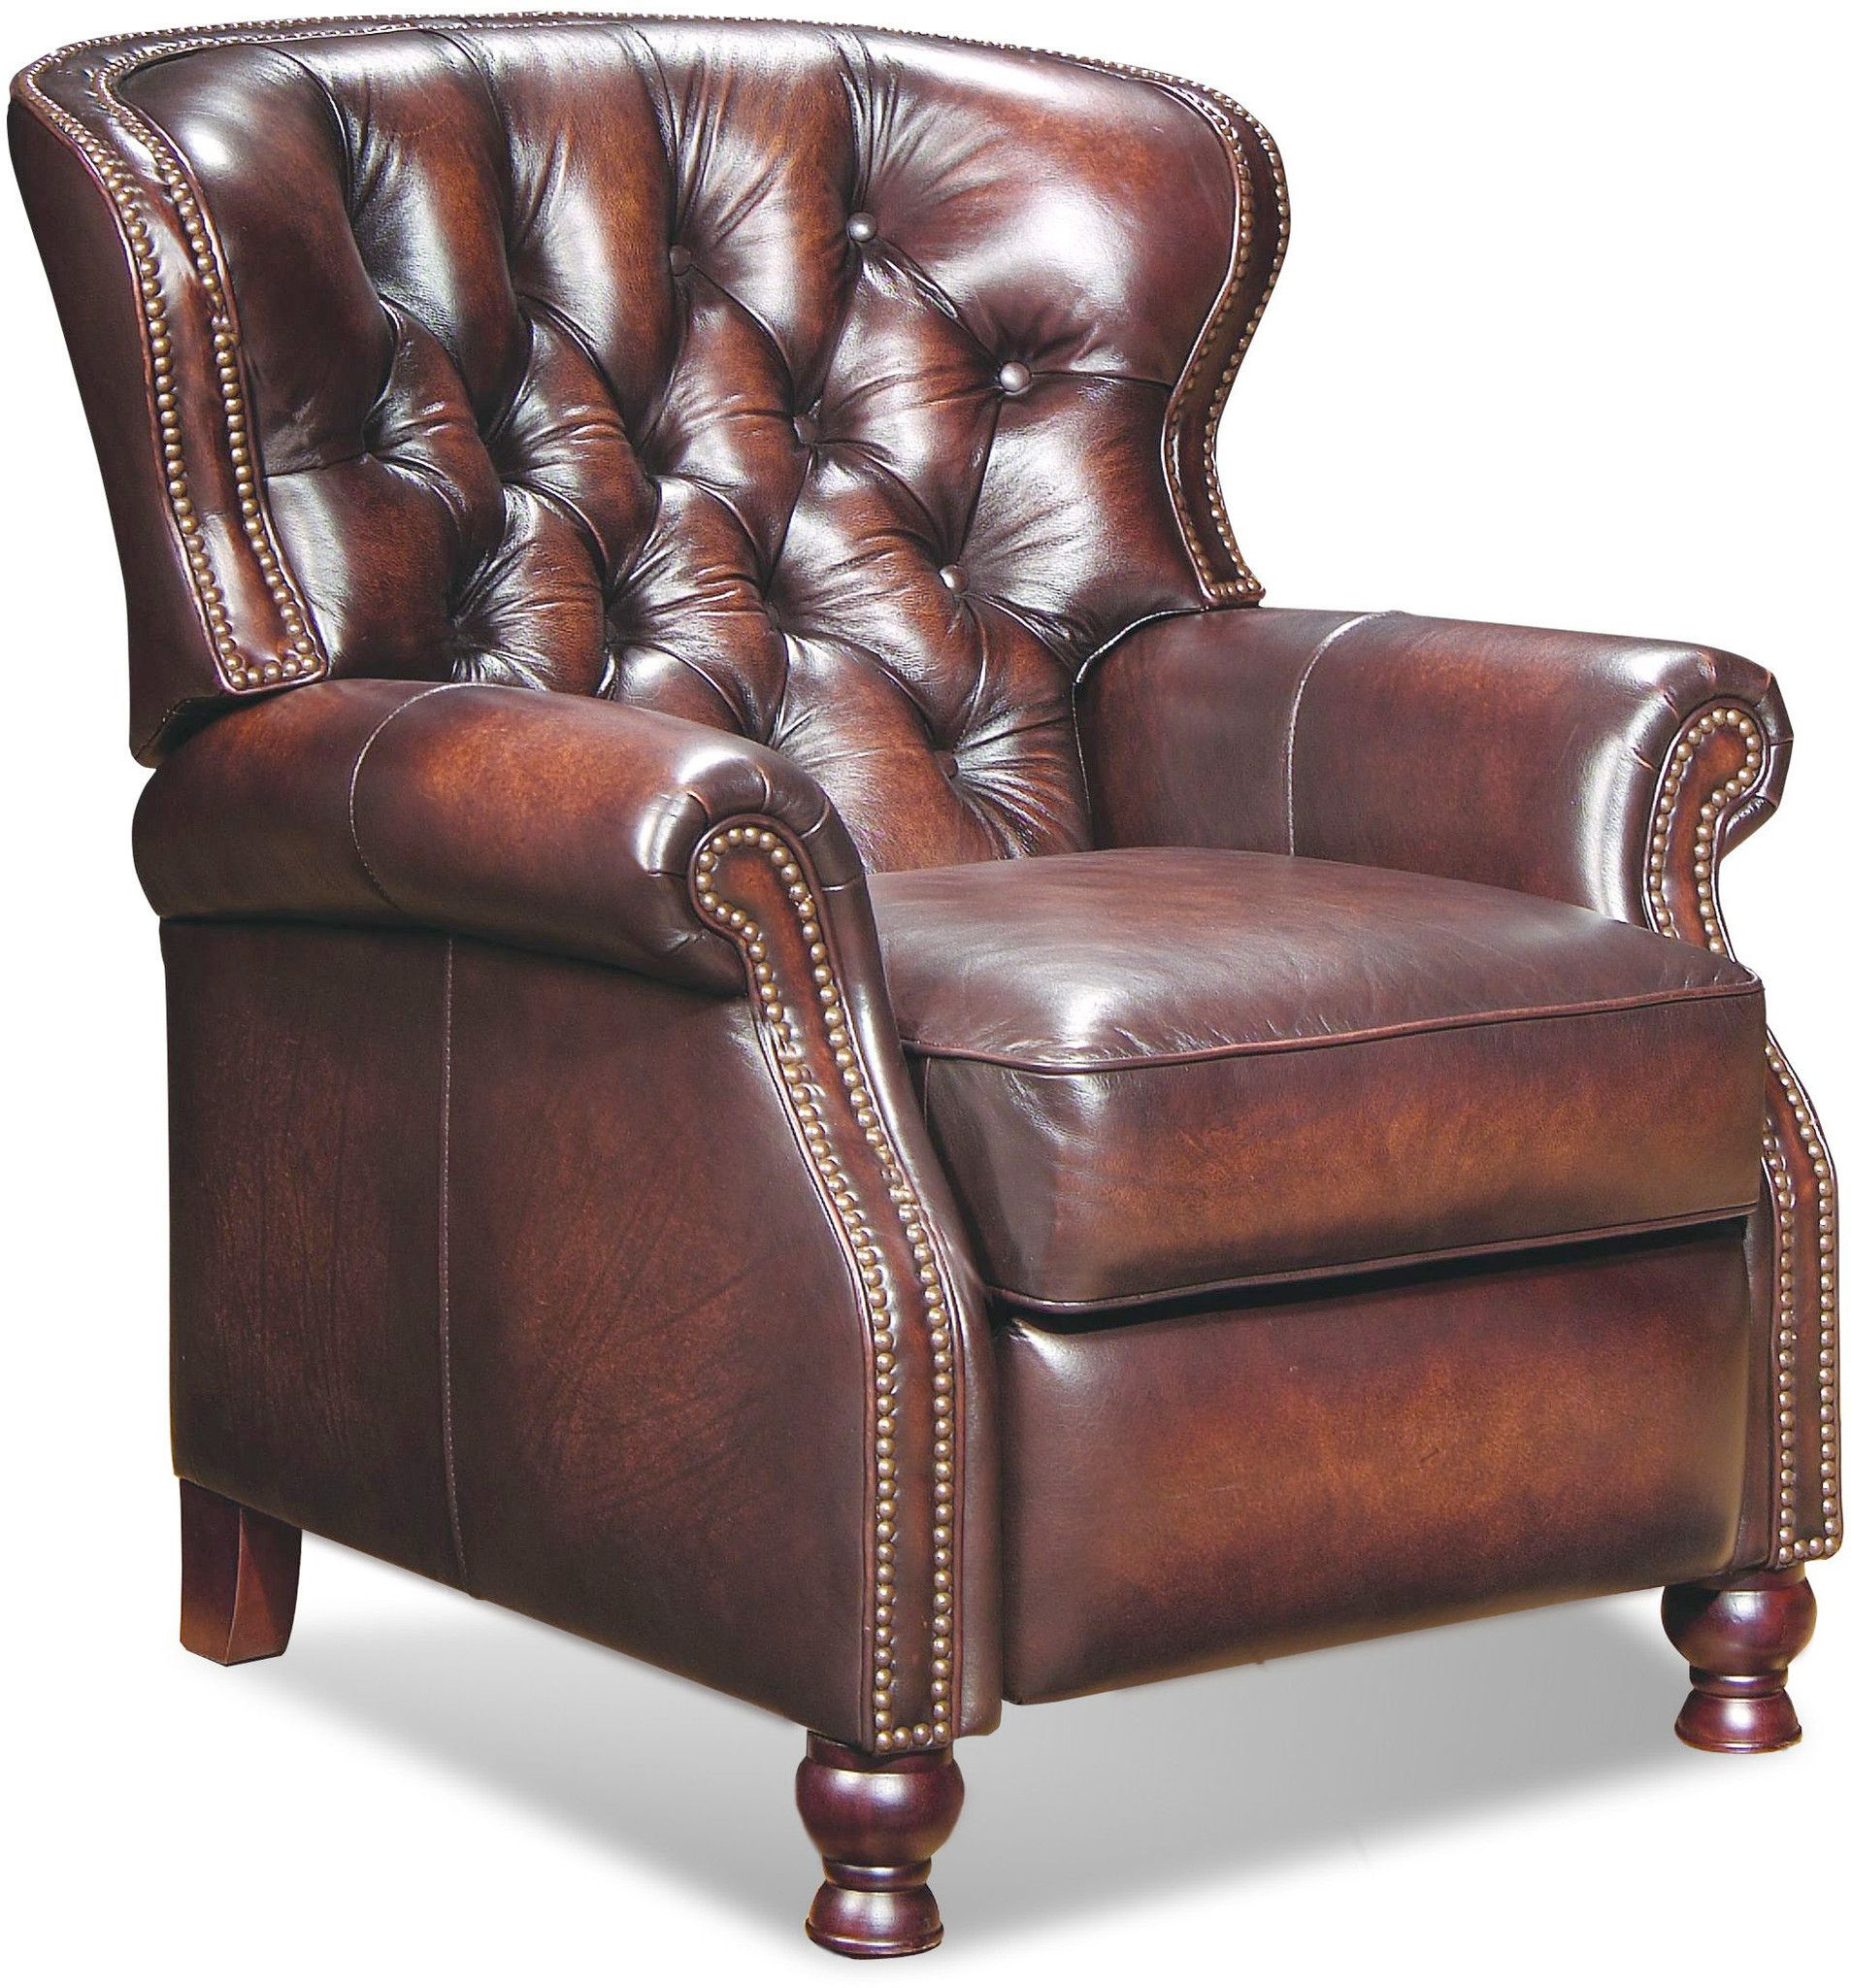 Laredo Brown Leather Dining Chair: Barcalounger Vintage Reserve Presidential II Recliner